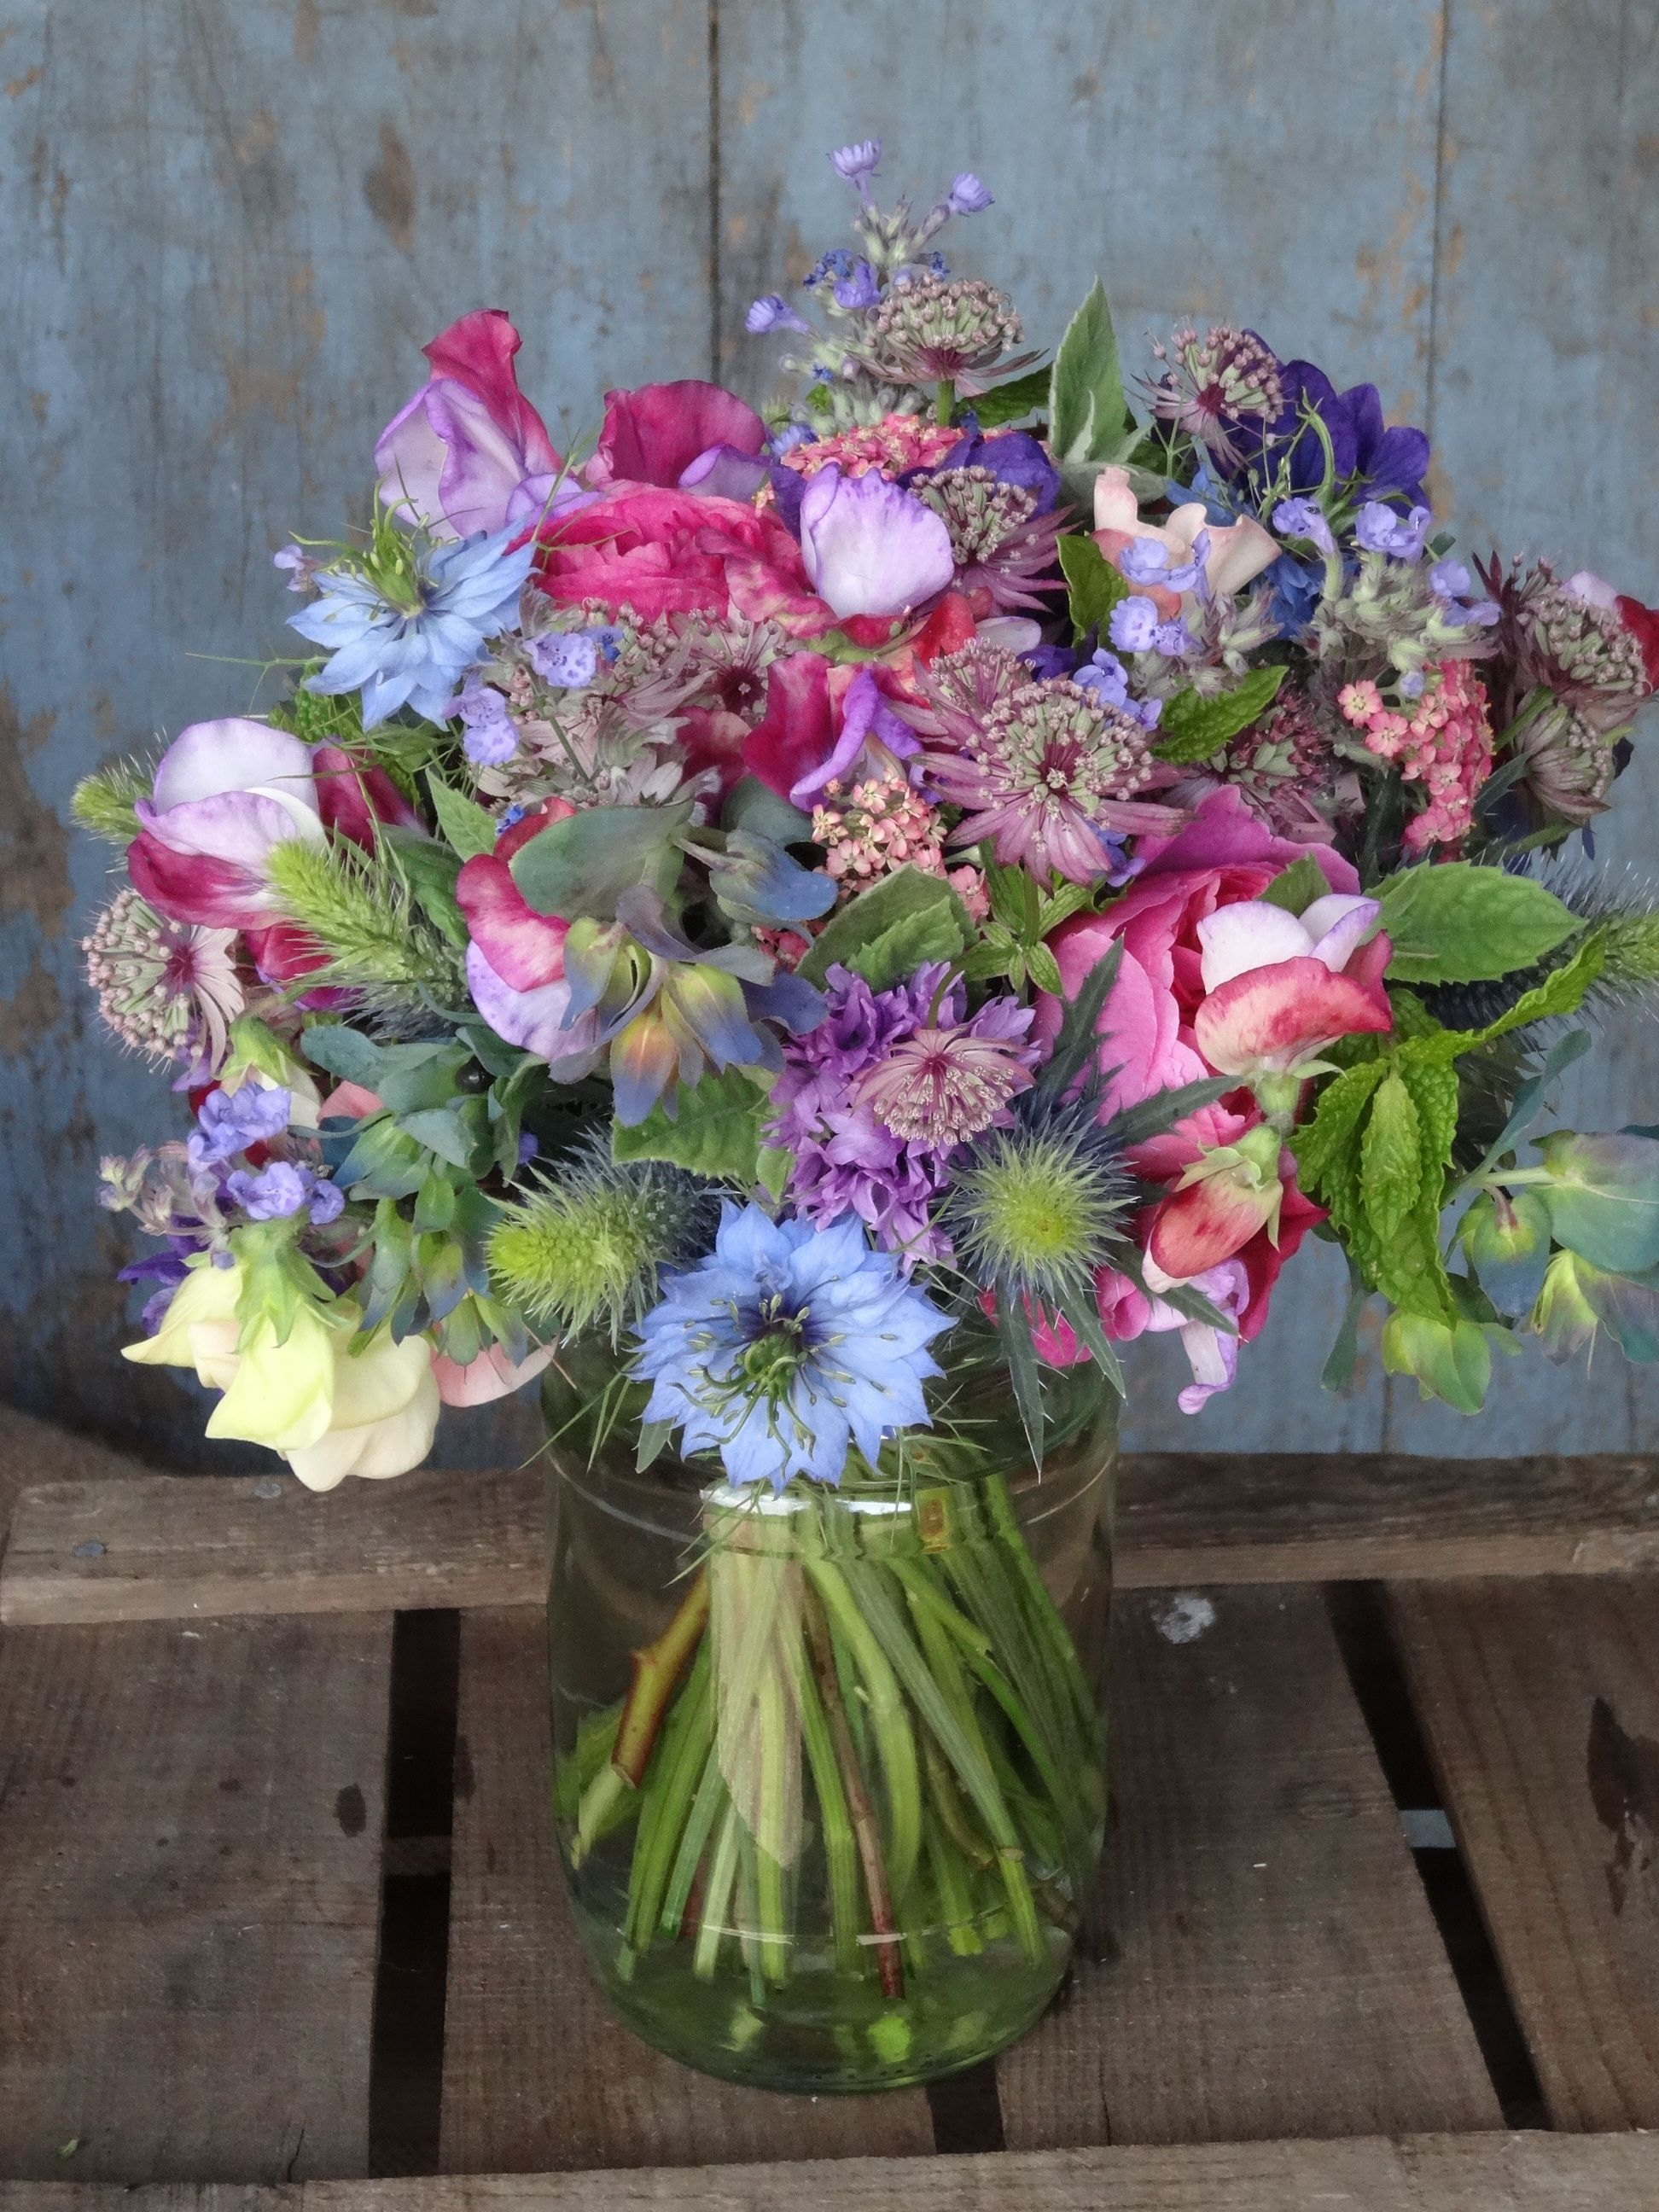 June Wedding Flowers By Catkin Www Catkinflowers Co Uk This Kind Of Style And Colours Helen A Lot These Are Still Available In July